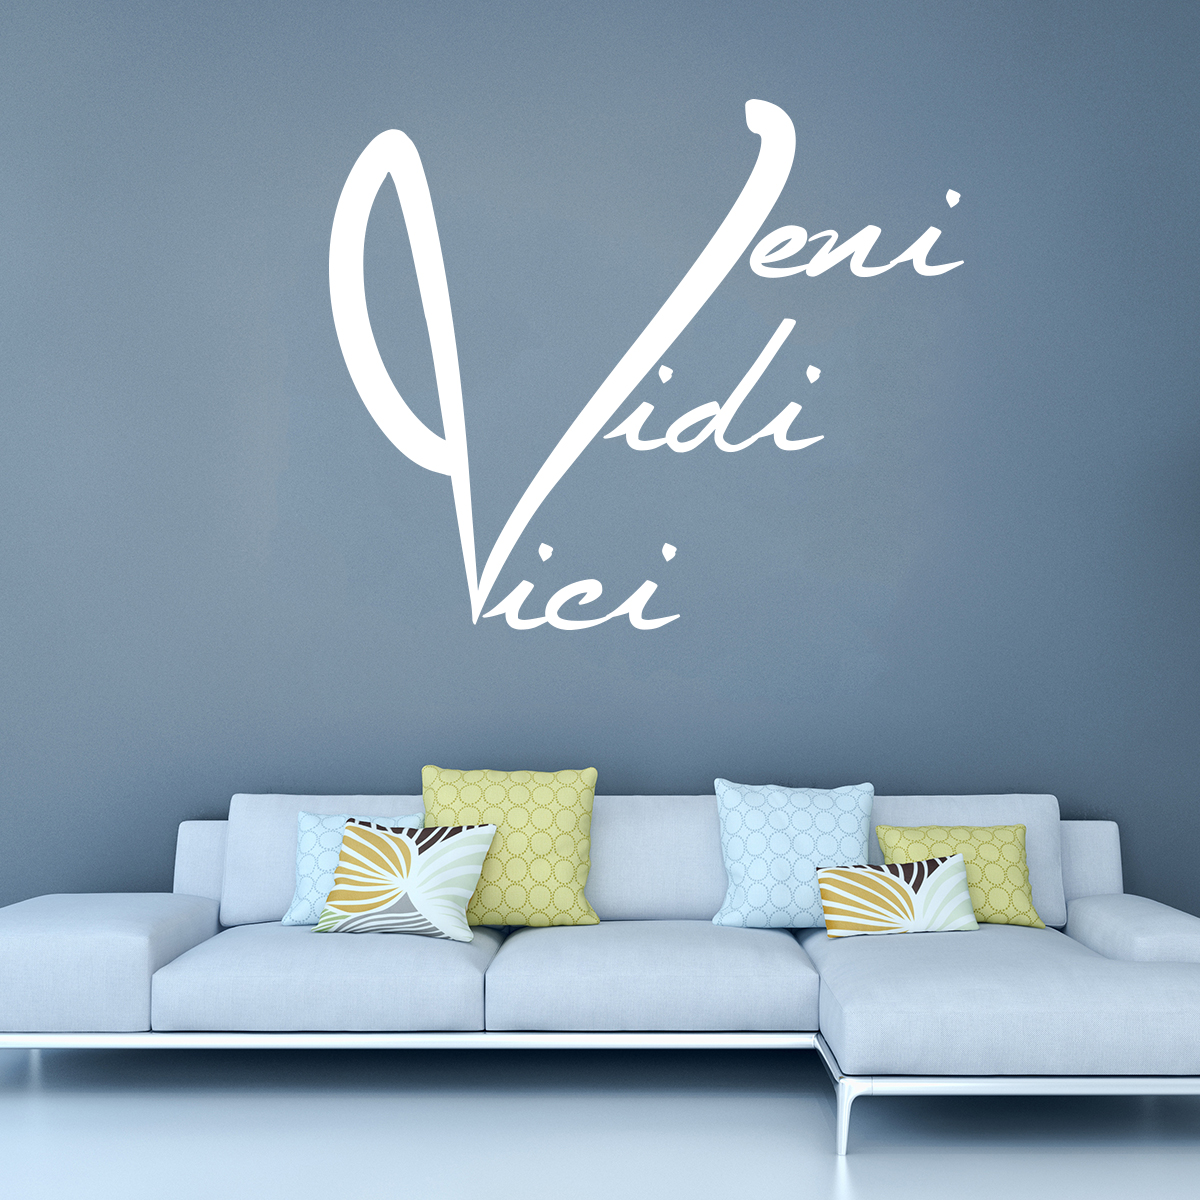 sticker citation veni vidi vici stickers citations. Black Bedroom Furniture Sets. Home Design Ideas